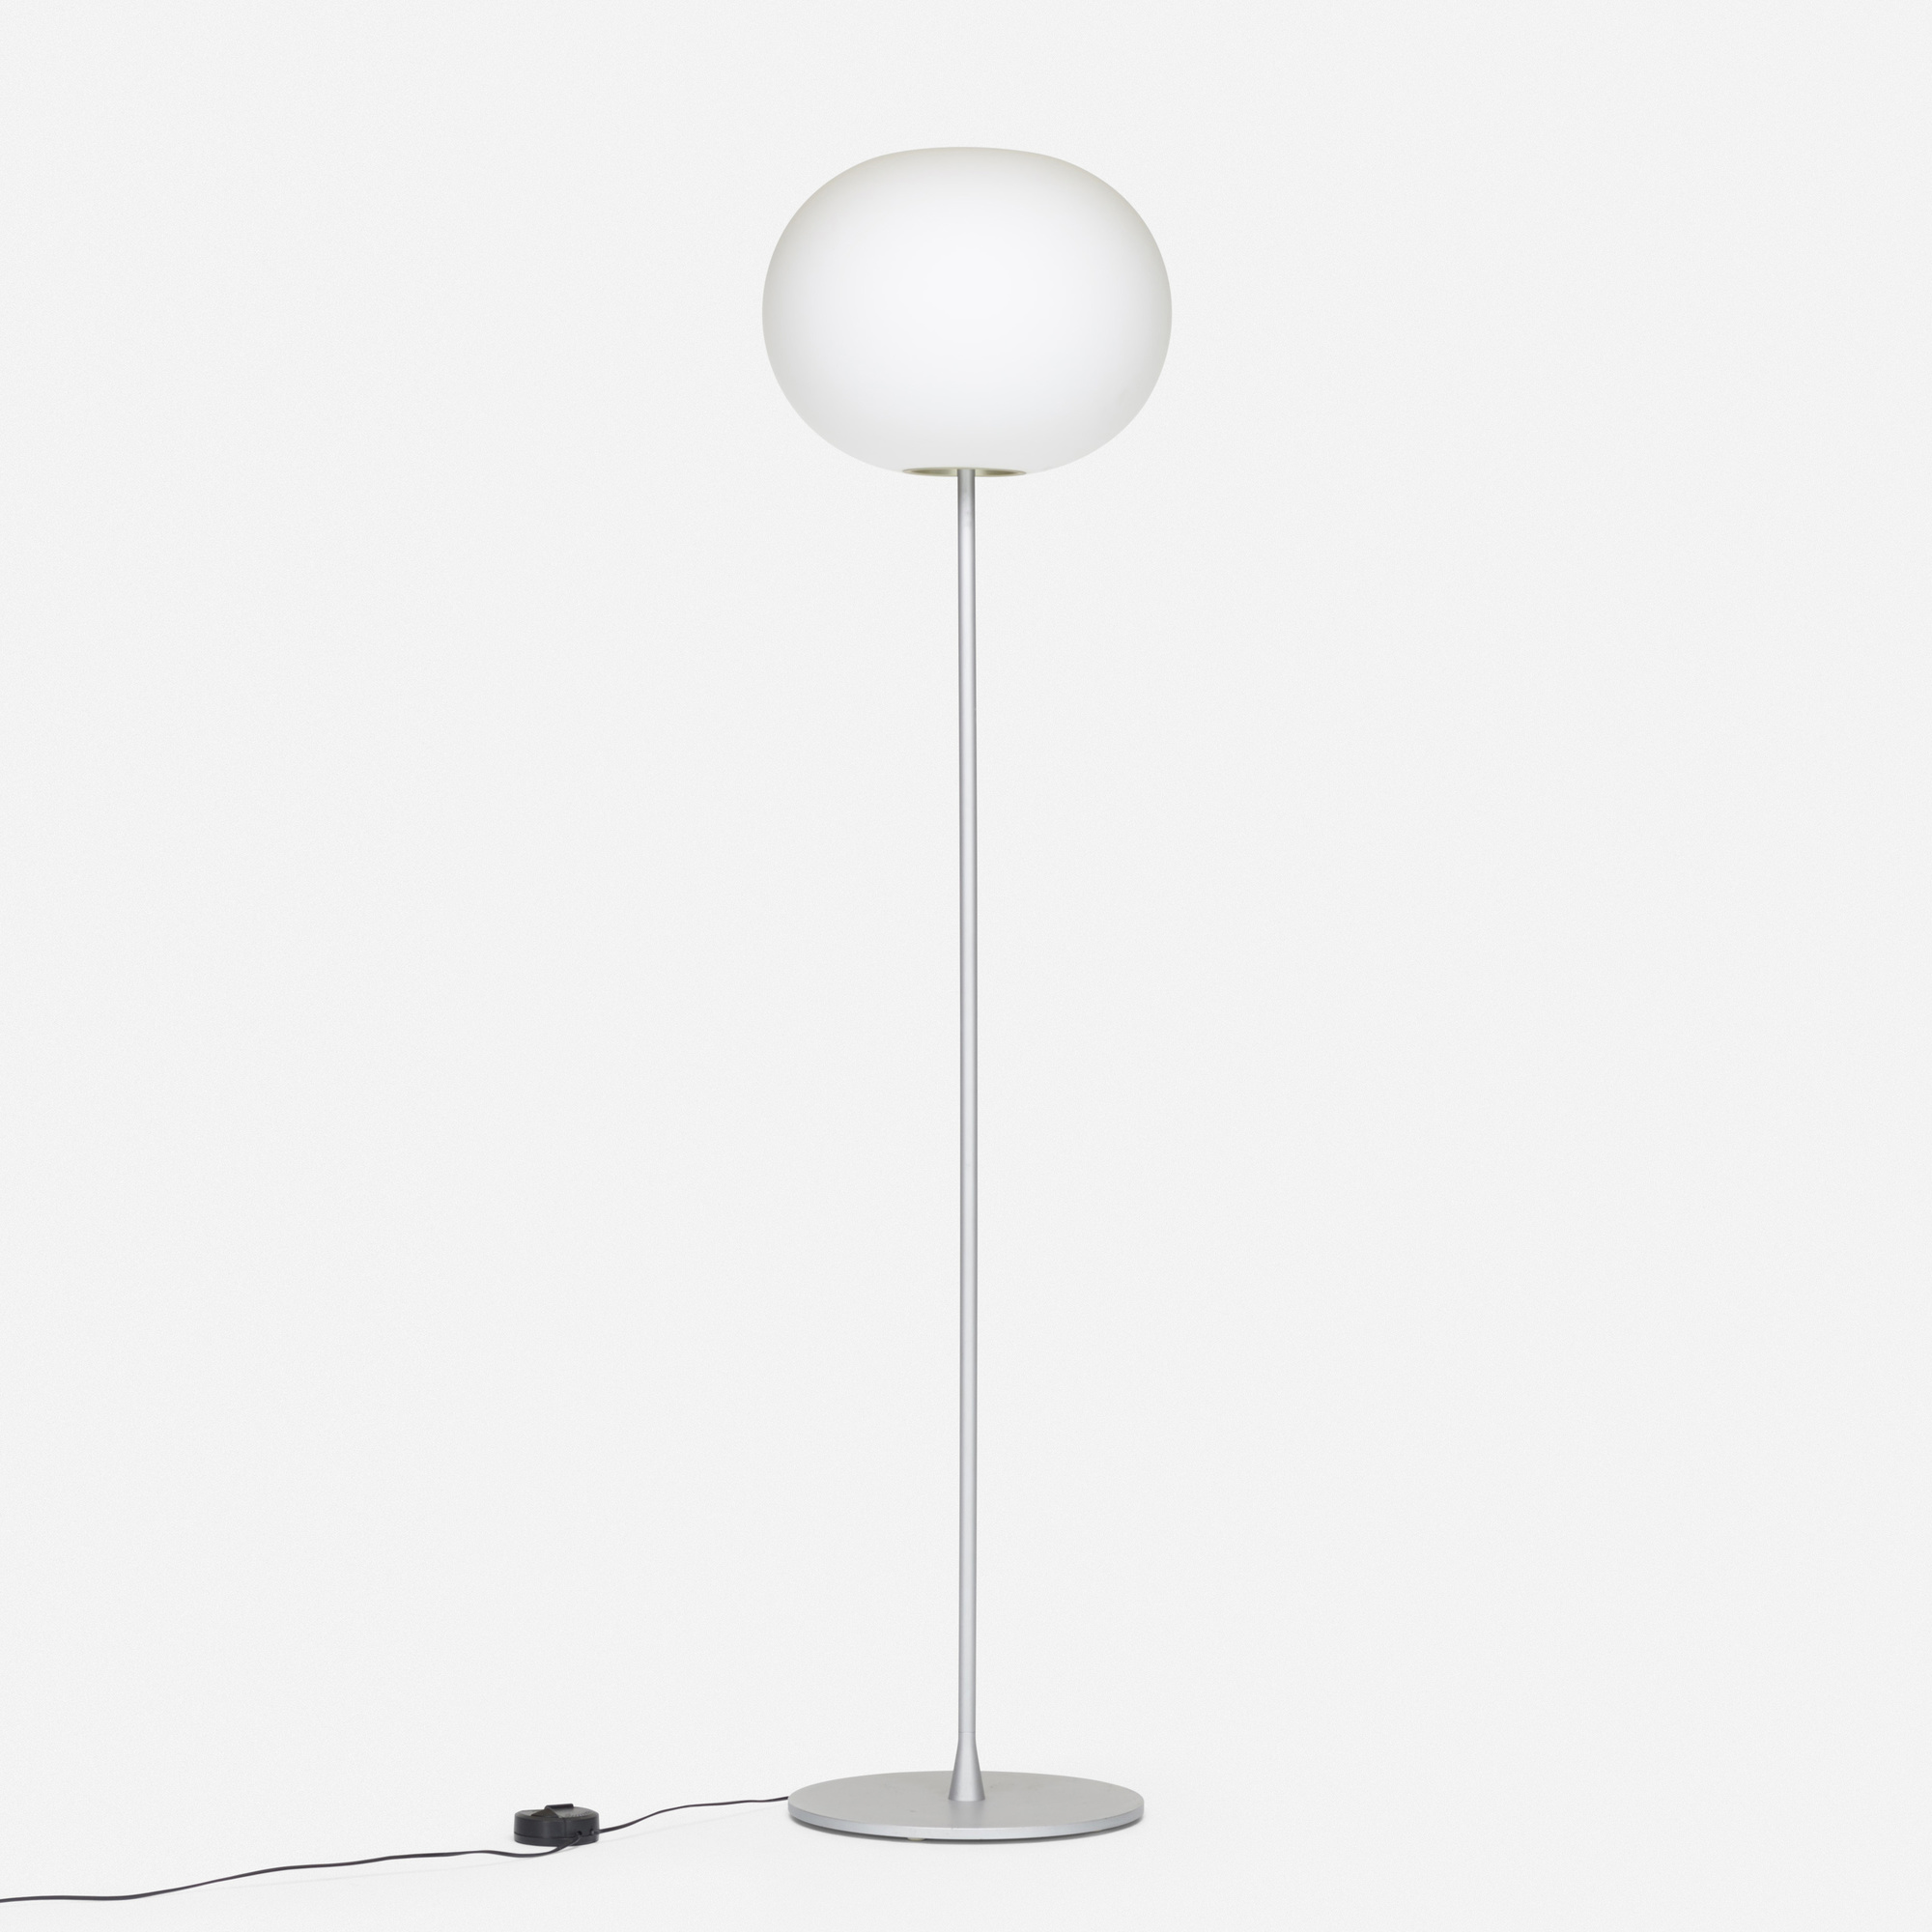 617: Jasper Morrison / Glo-Ball floor lamp (1 of 1)